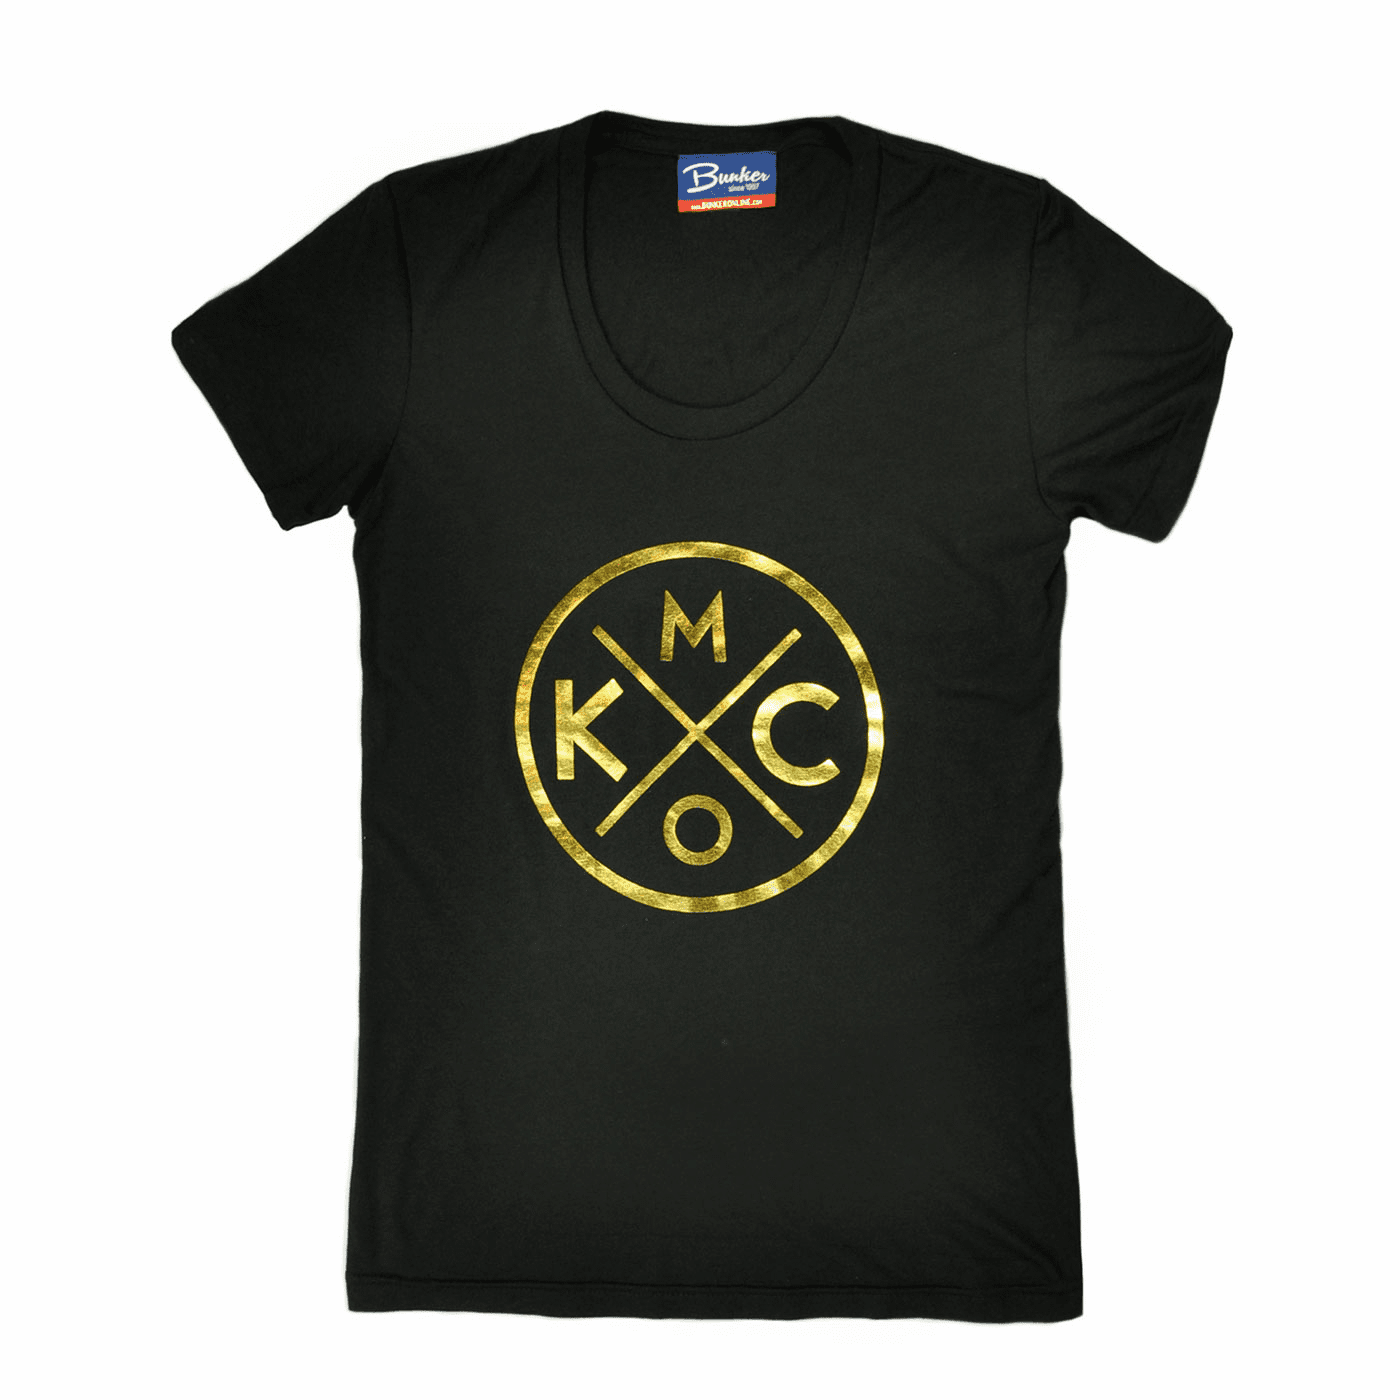 Womens KCMO Gold Foil Tee